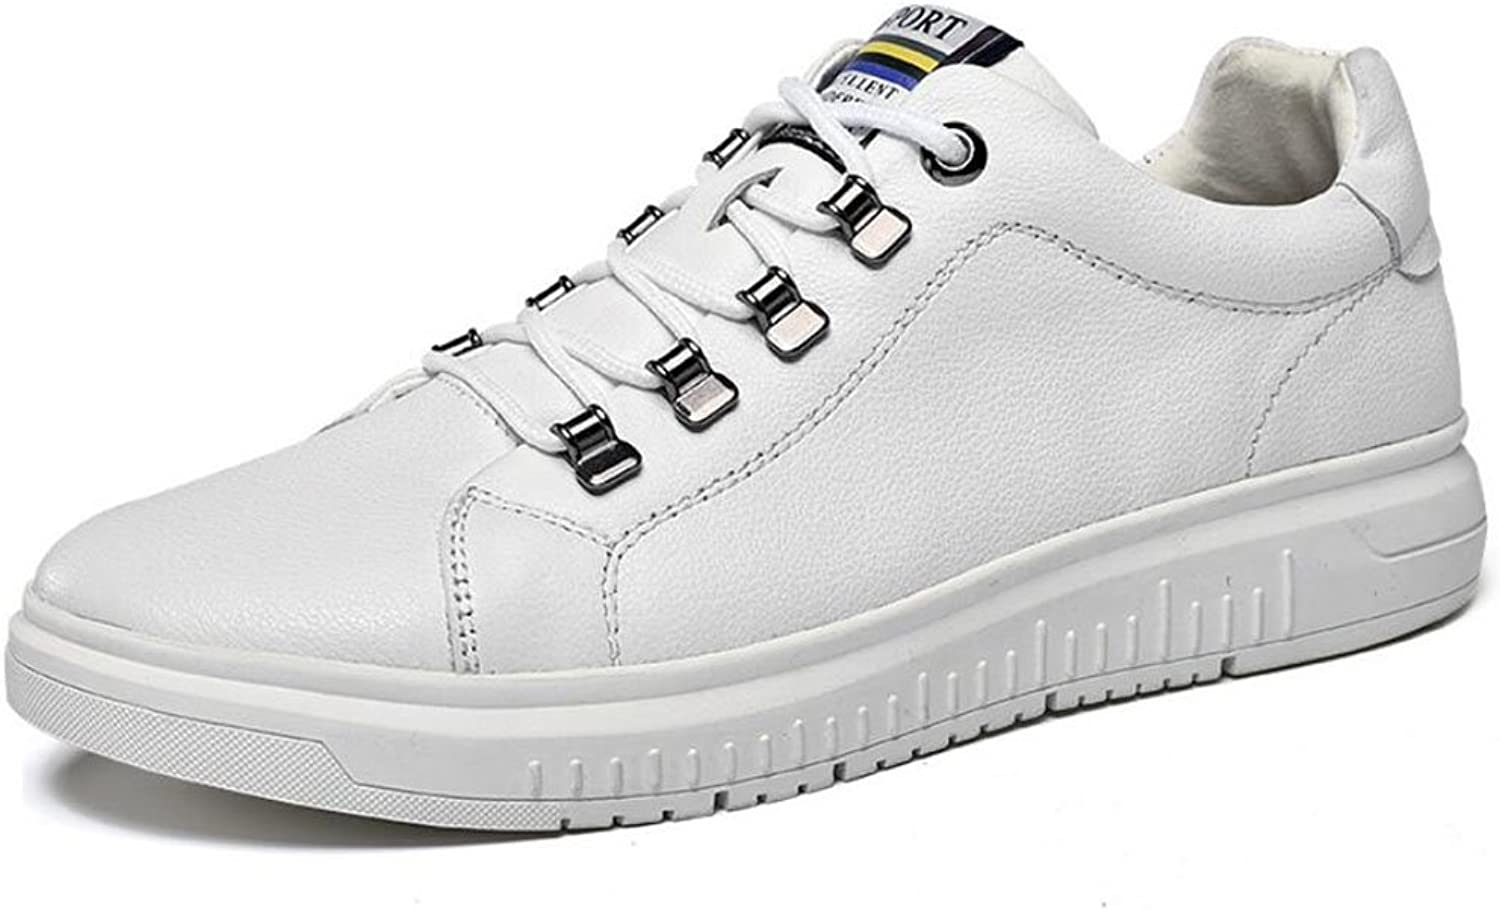 Men's shoes Leather Athletic shoes Spring Fall Winter Mens Comfort Sneakers Cycling shoes Walking shoes (color   White, Size   38)